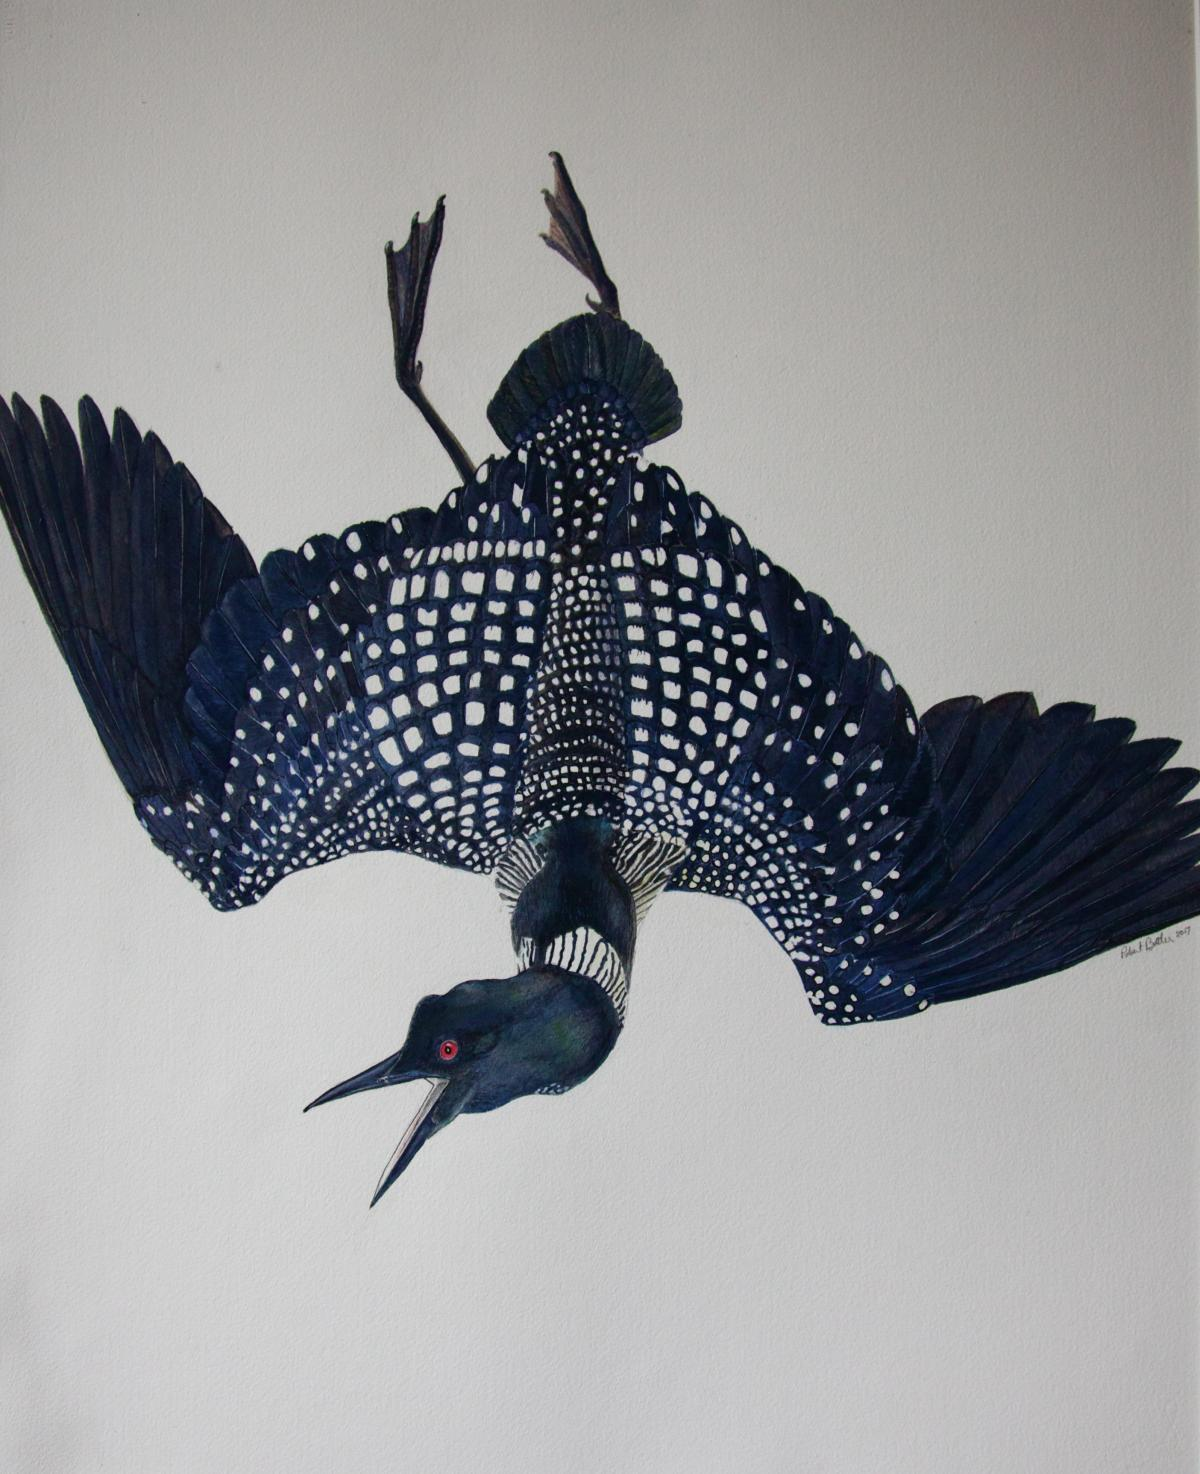 Loon on the Wing   Wallhanging by Rob Butler   Artists for Conservation 2018